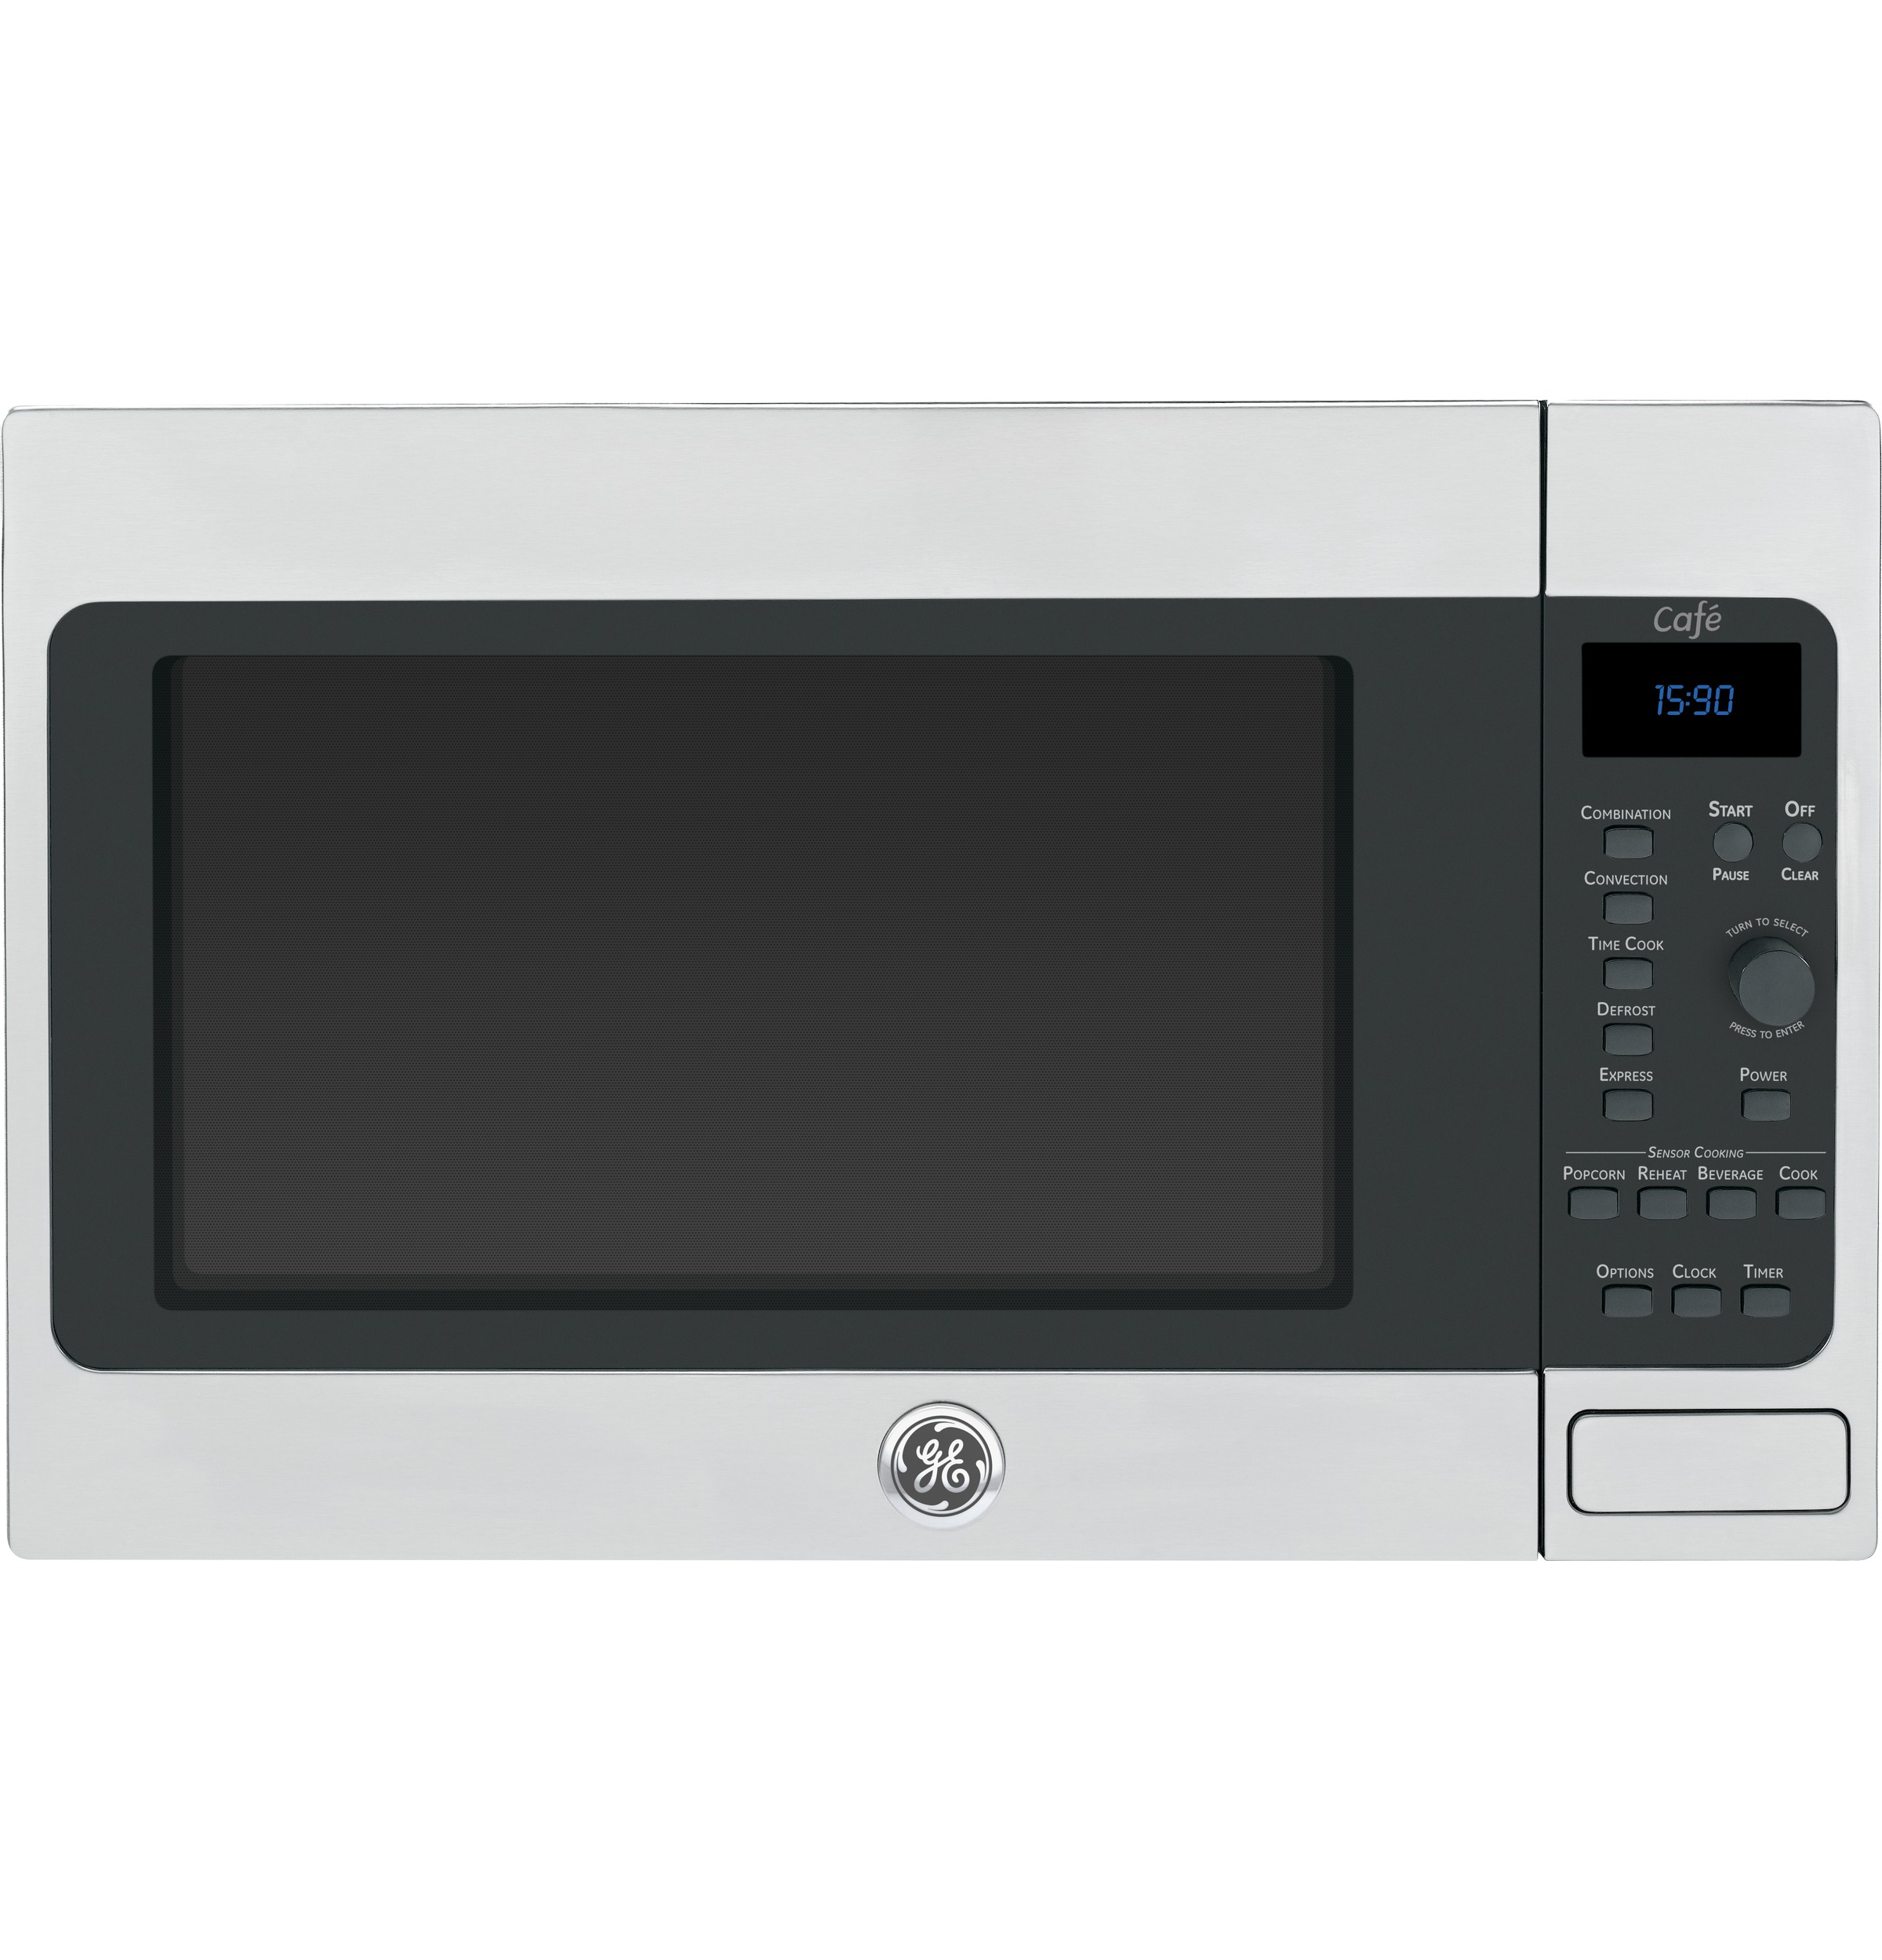 Countertop Convection Oven With Microwave : ... Ft. Countertop Convection/Microwave Oven CEB1590SSSS GE Appliances